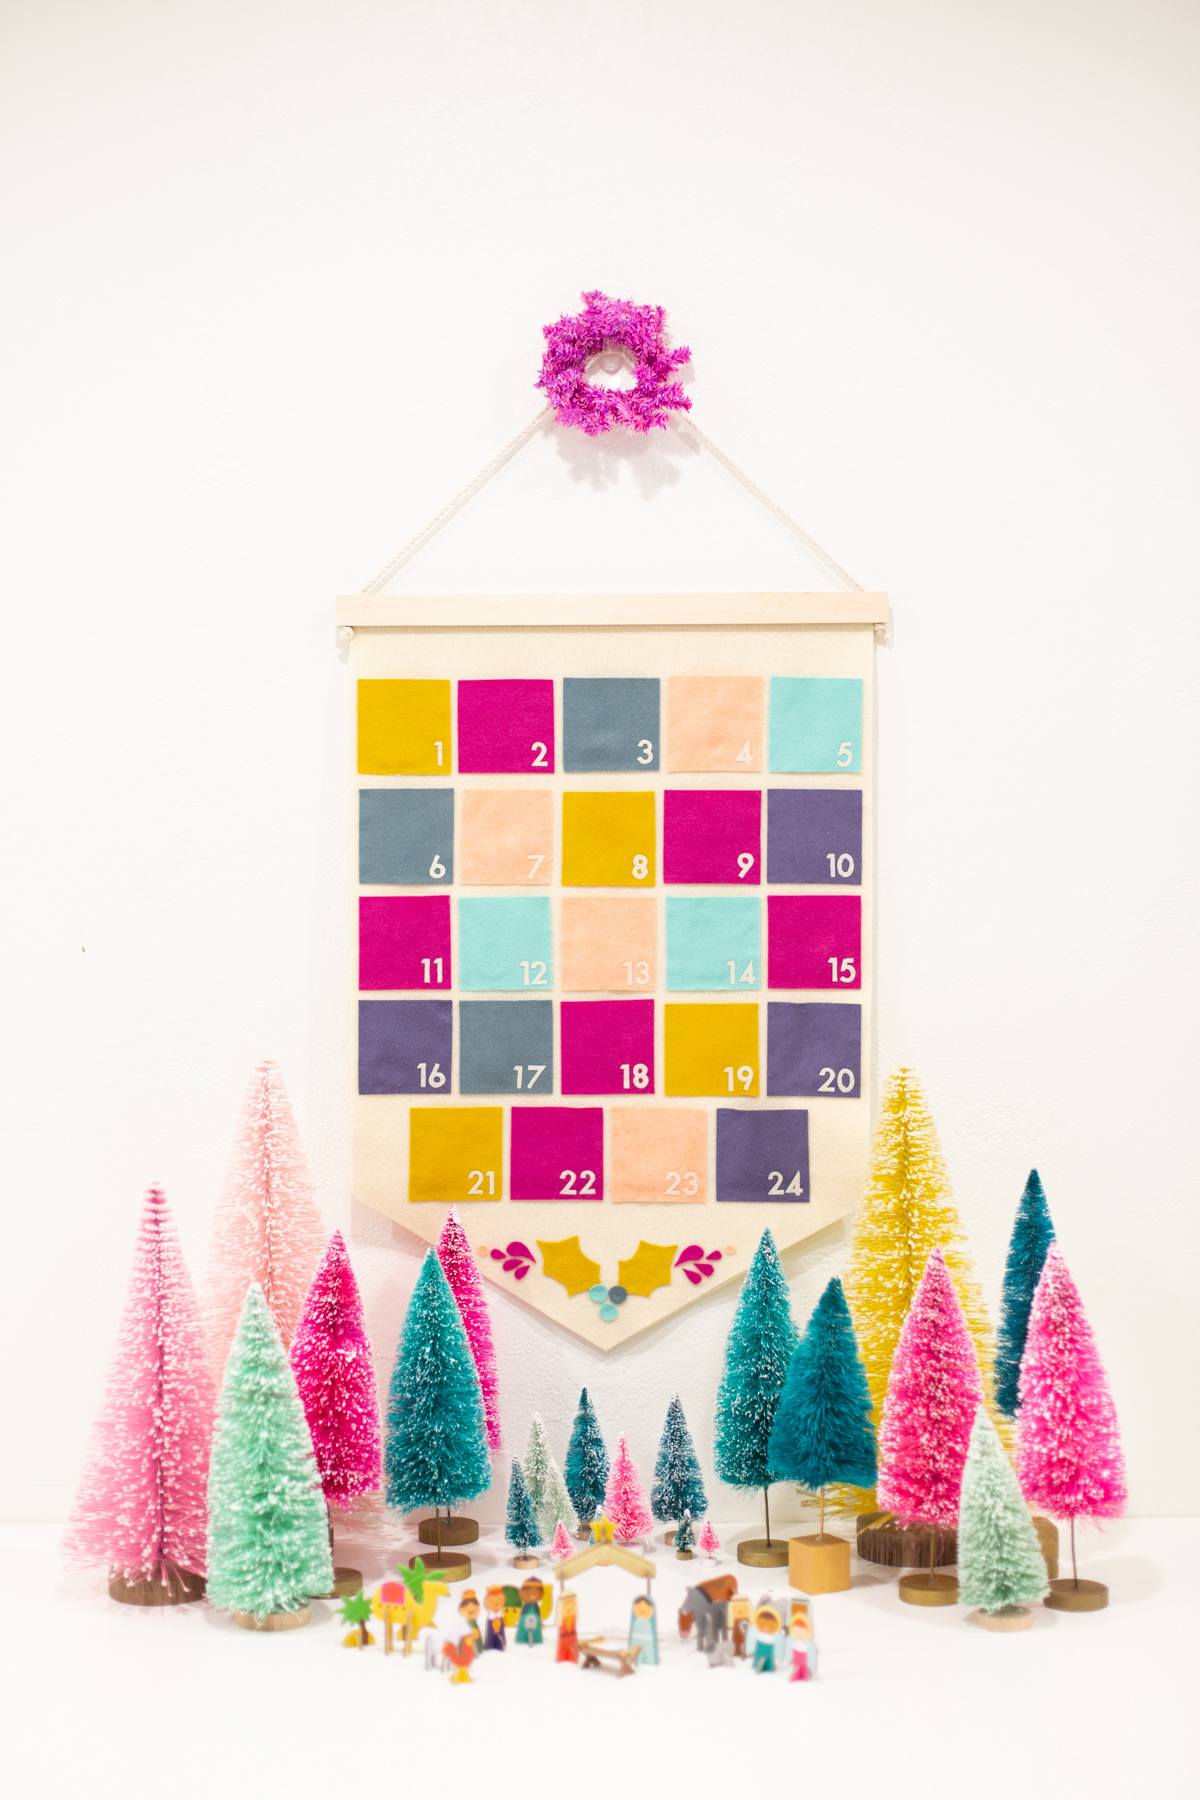 Top 10 Colourful DIY Advent Calendars - Image by Lovely Indeed on Squirrelly Minds